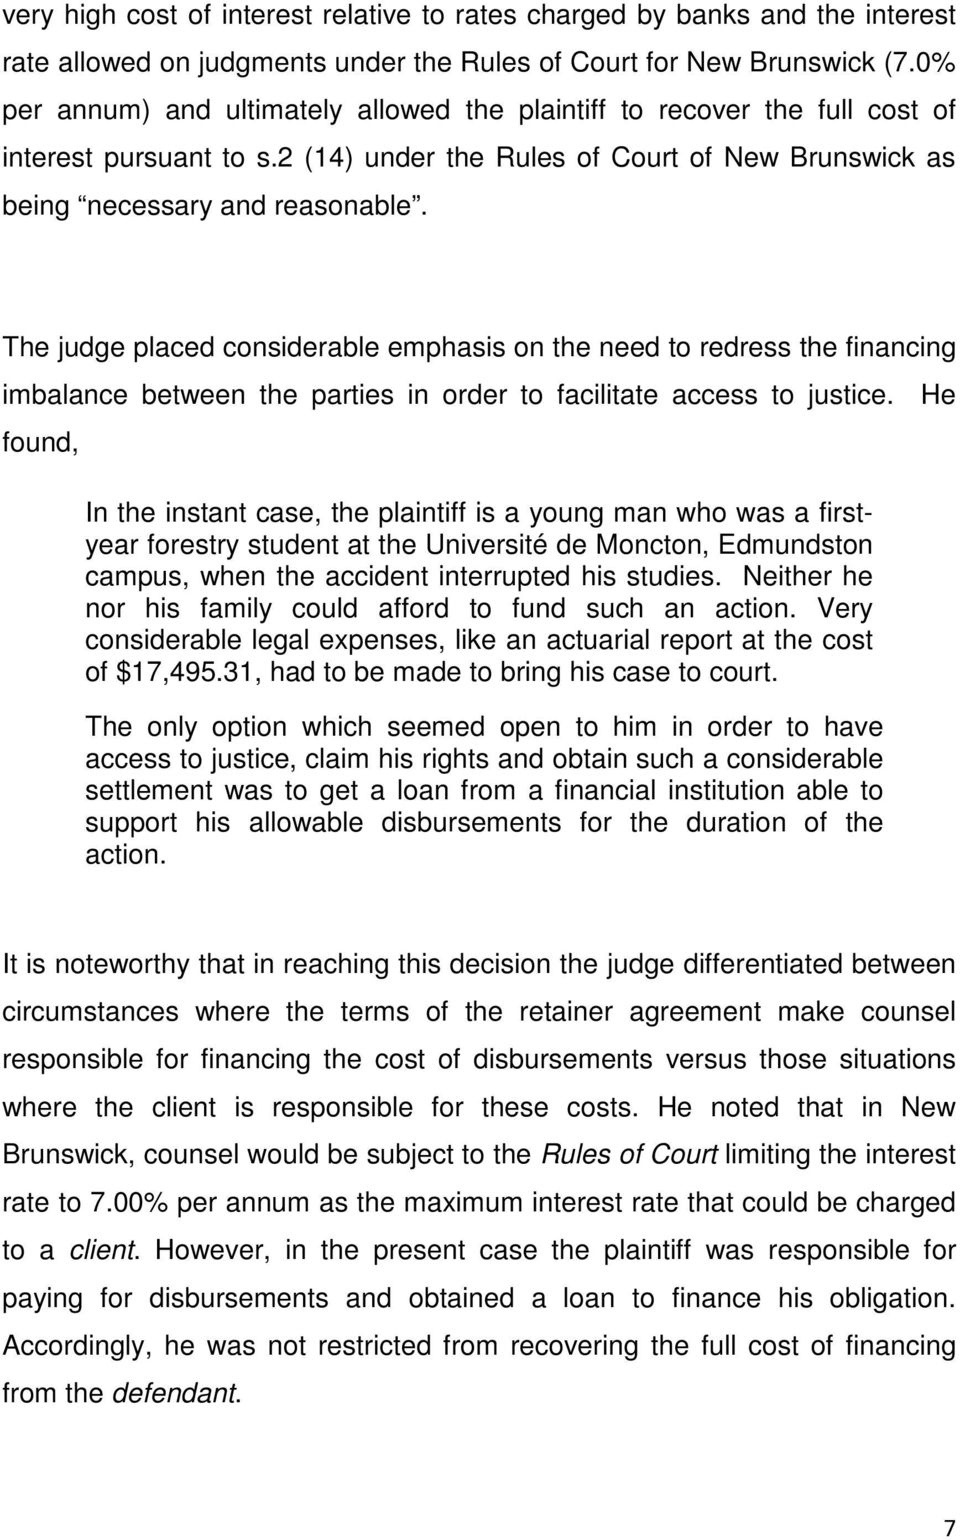 The judge placed considerable emphasis on the need to redress the financing imbalance between the parties in order to facilitate access to justice.